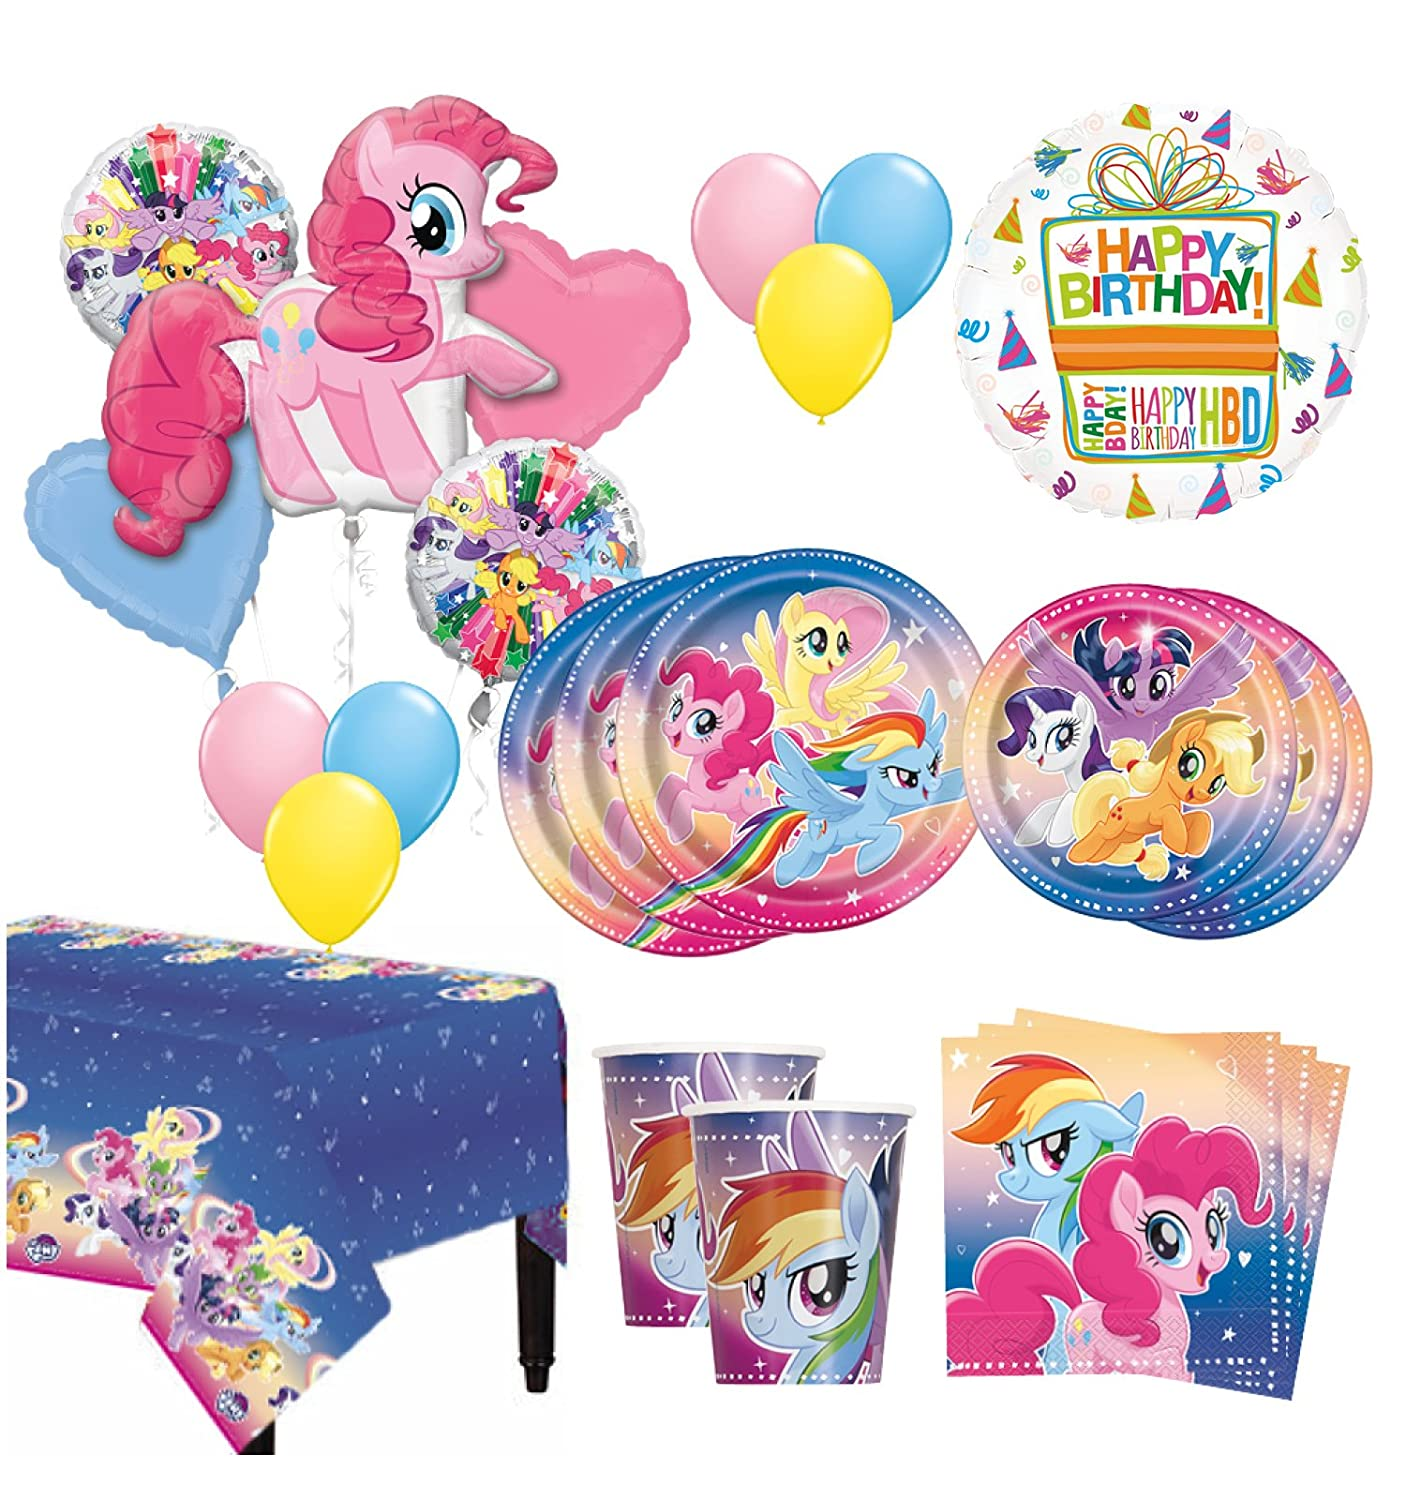 Mayflower Products The Ultimate 8 Guest 53pc My Little Pony Birthday Party Supplies and Balloon Bouquet Decoration Kit Anscam